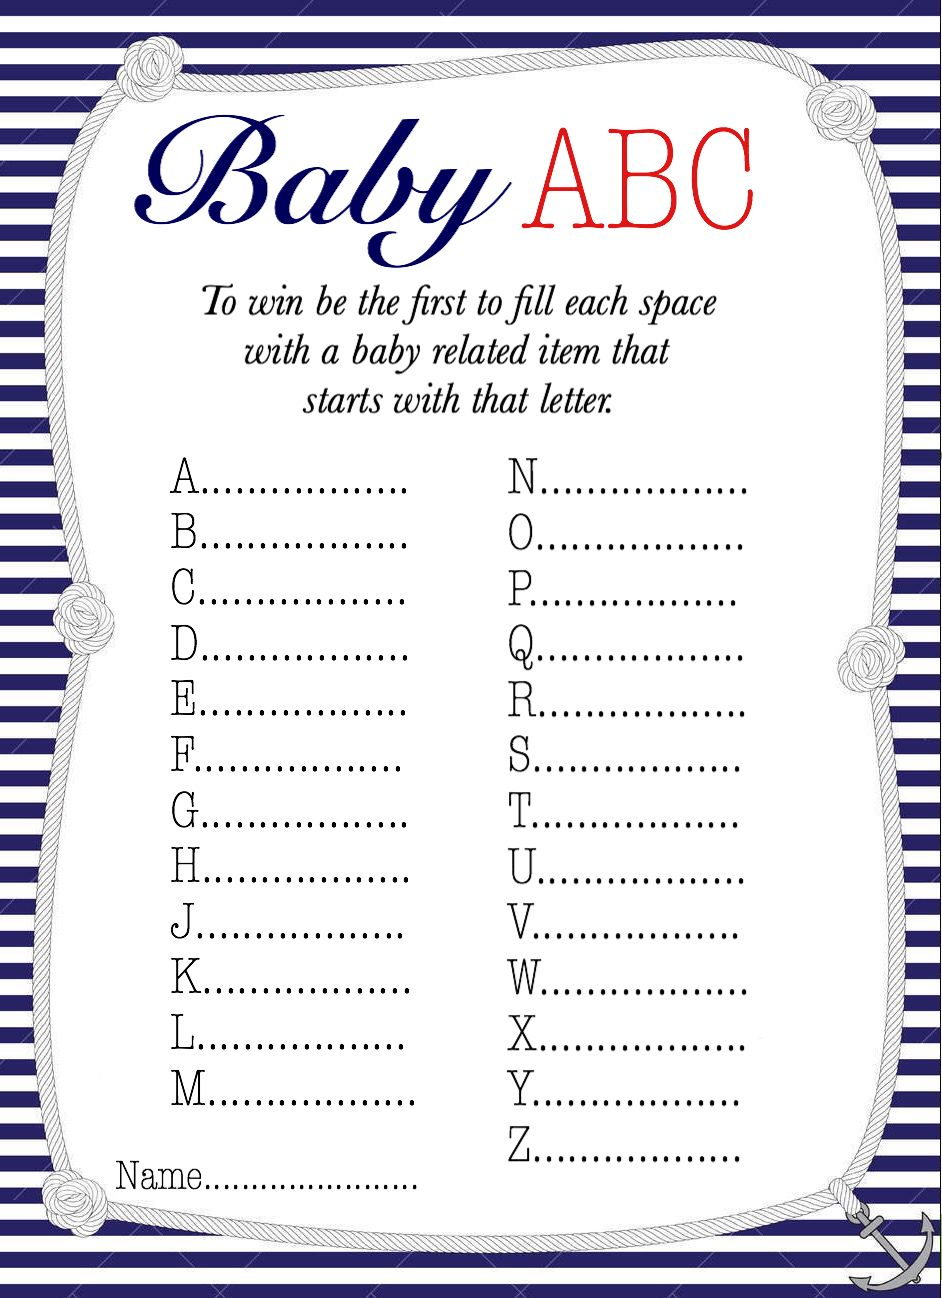 Free printable baby shower games! | Baby shower games | Baby shower fun, Baby  shower printables, Baby shower games